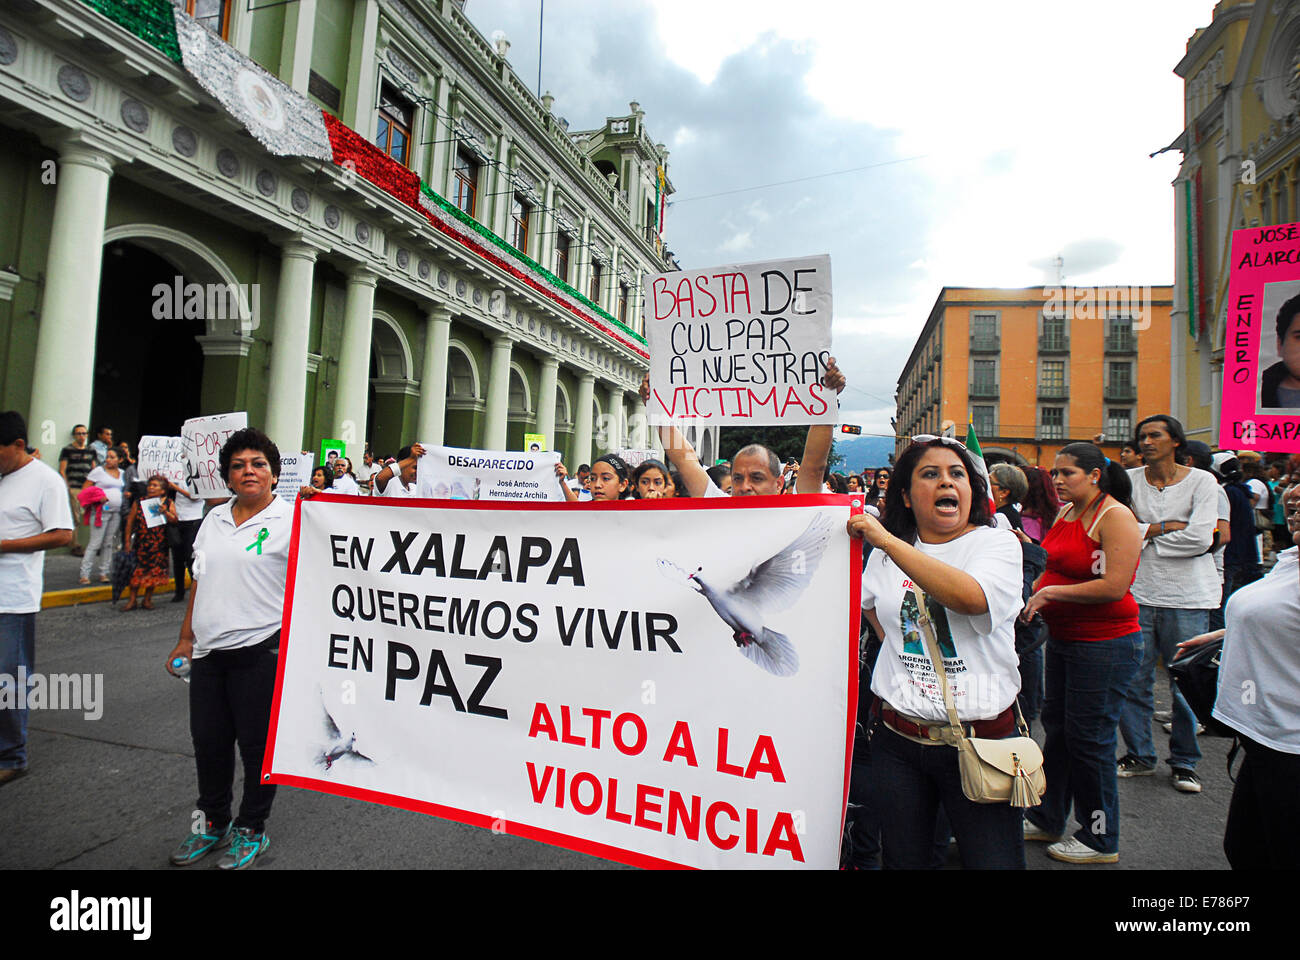 About 500 people, comprised of the families and friends of missing people in Veracruz, stage march rally from Benemérita - Stock Image